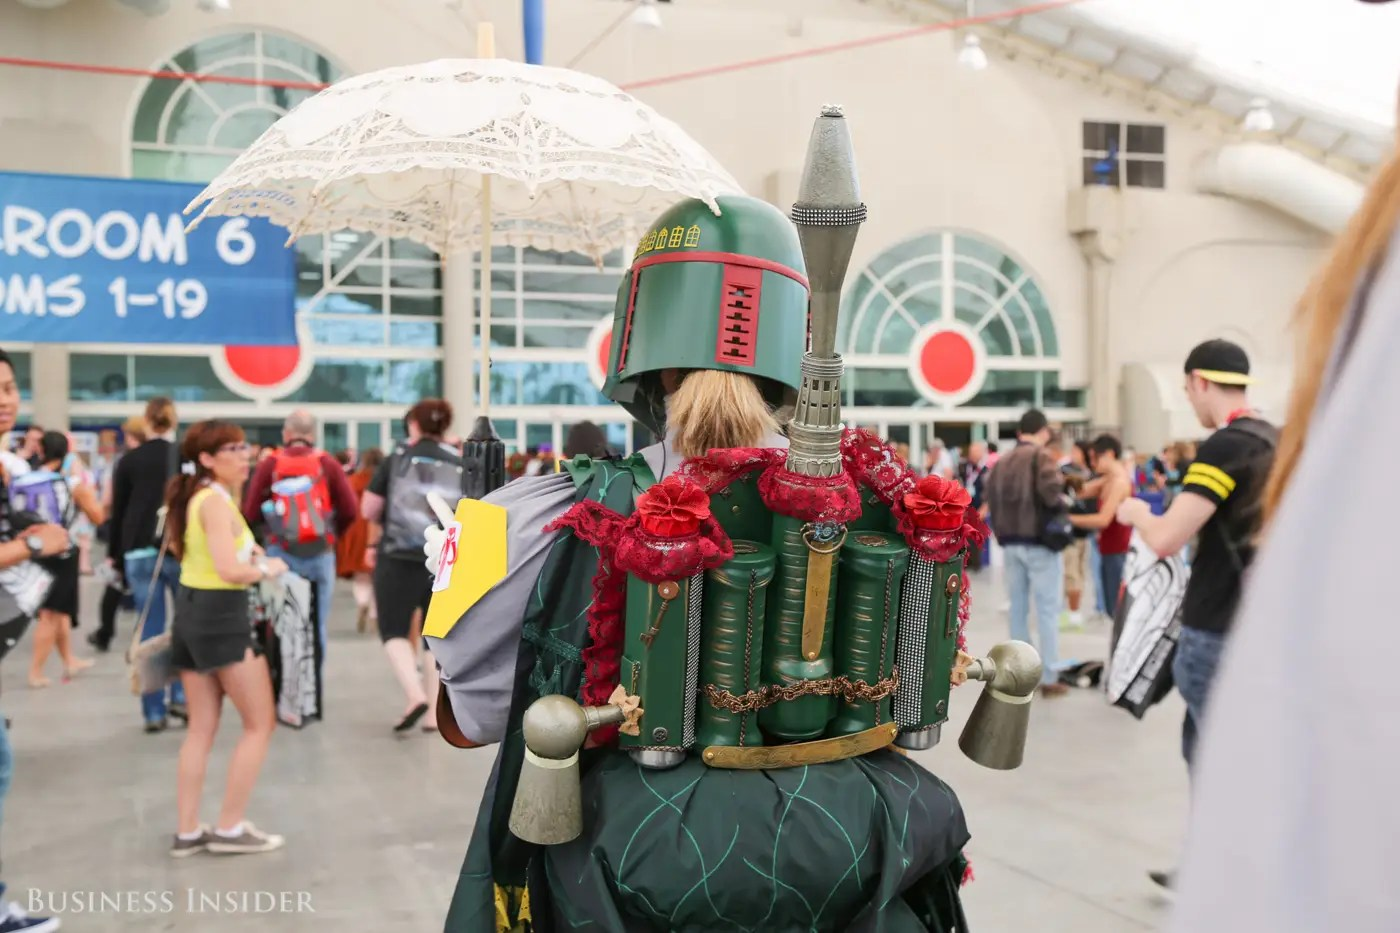 We love Boba Fett's jetpack adorned with roses.